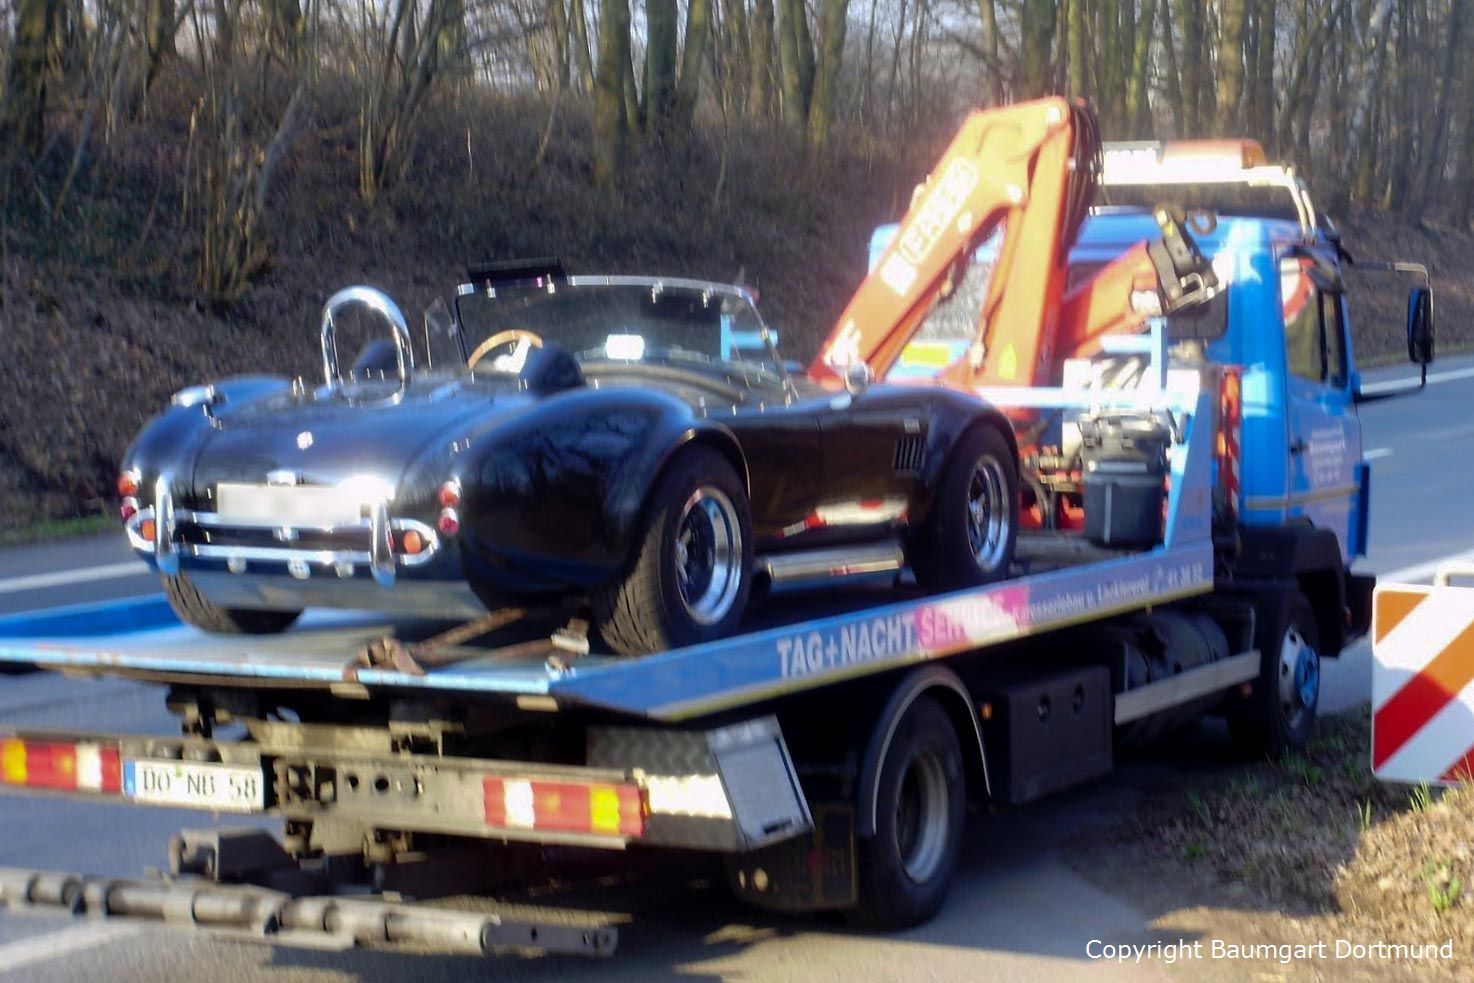 Autotransport einer AC Cobra